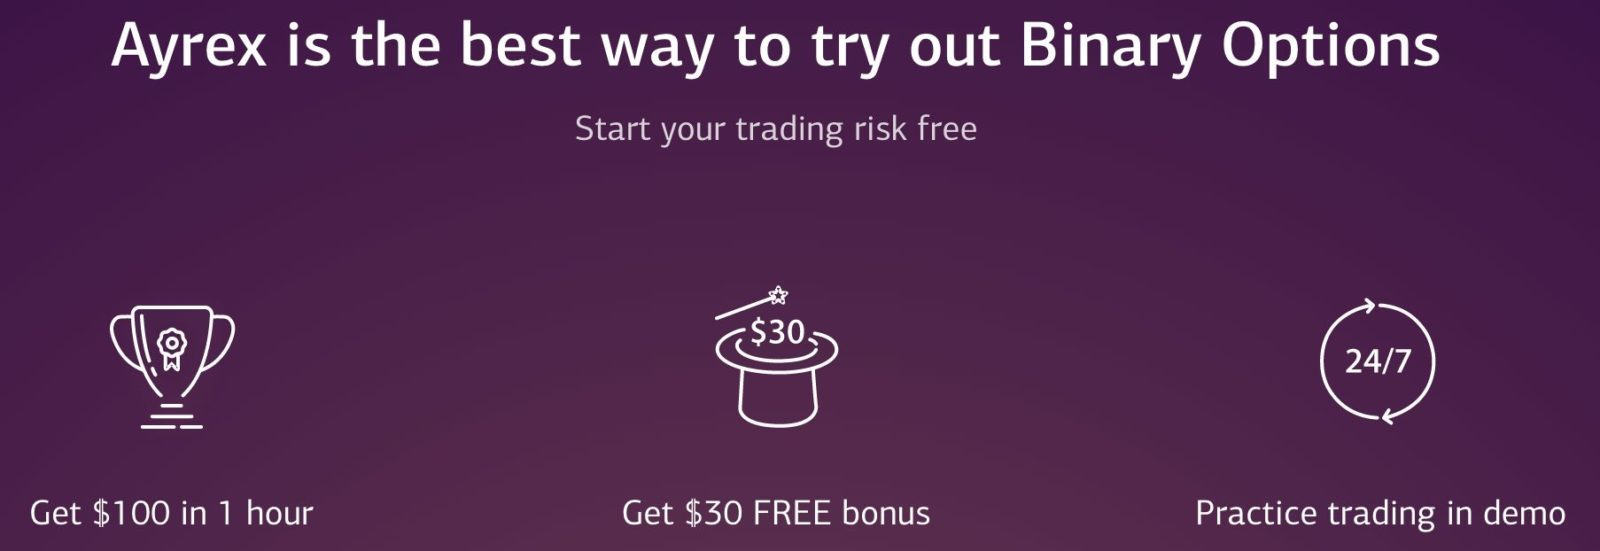 Learn binary options basics and improve your trading